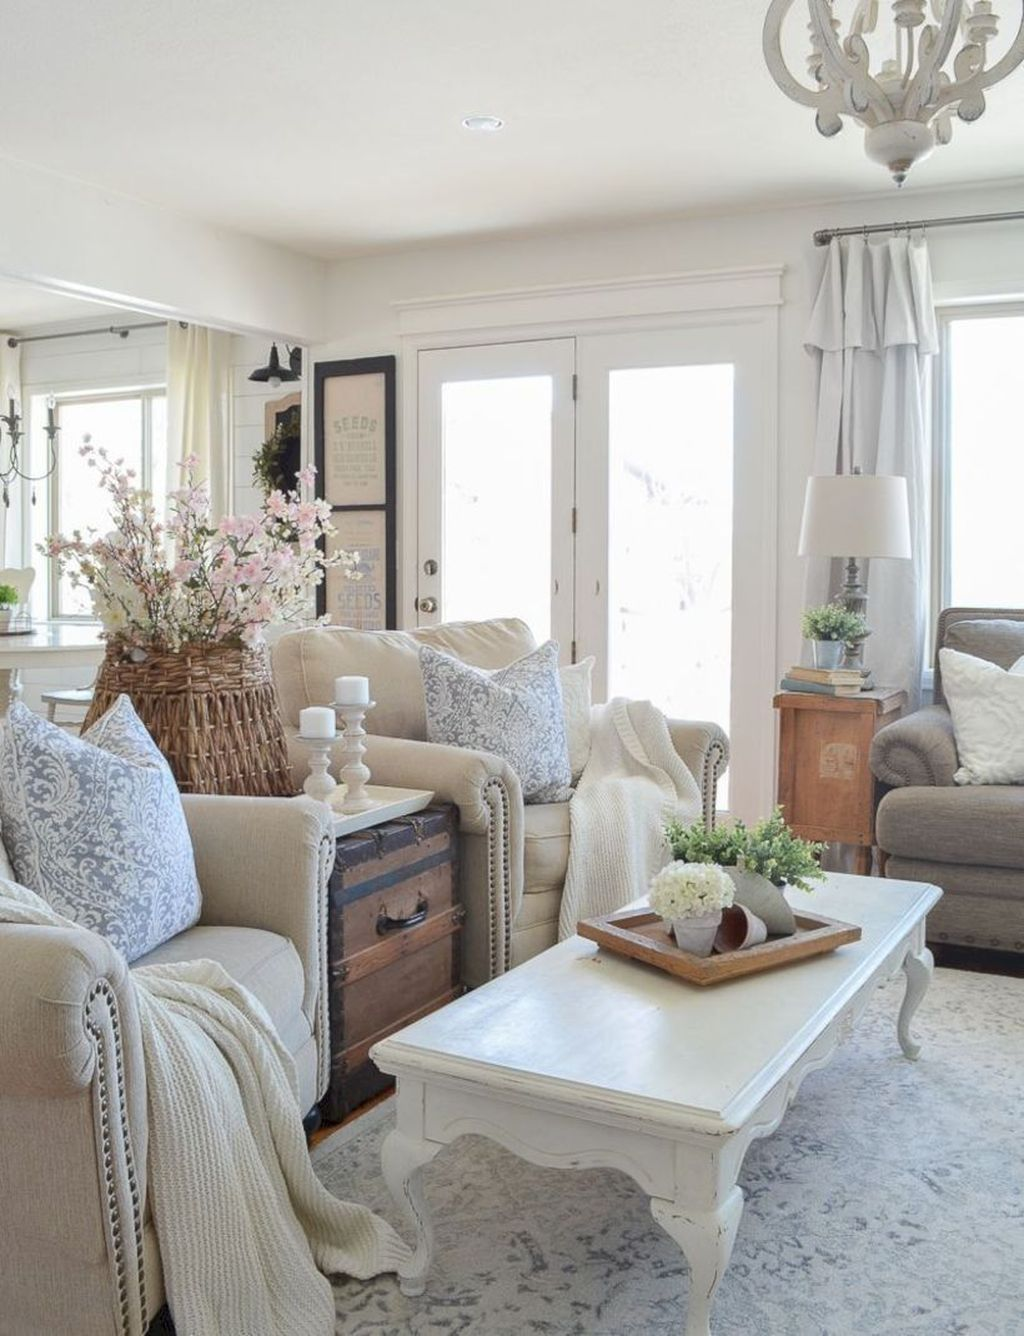 Farmhouse Chic Living Room Decor: 20+ Fabulous Shabby Chic Farmhouse Living Room Decor Ideas